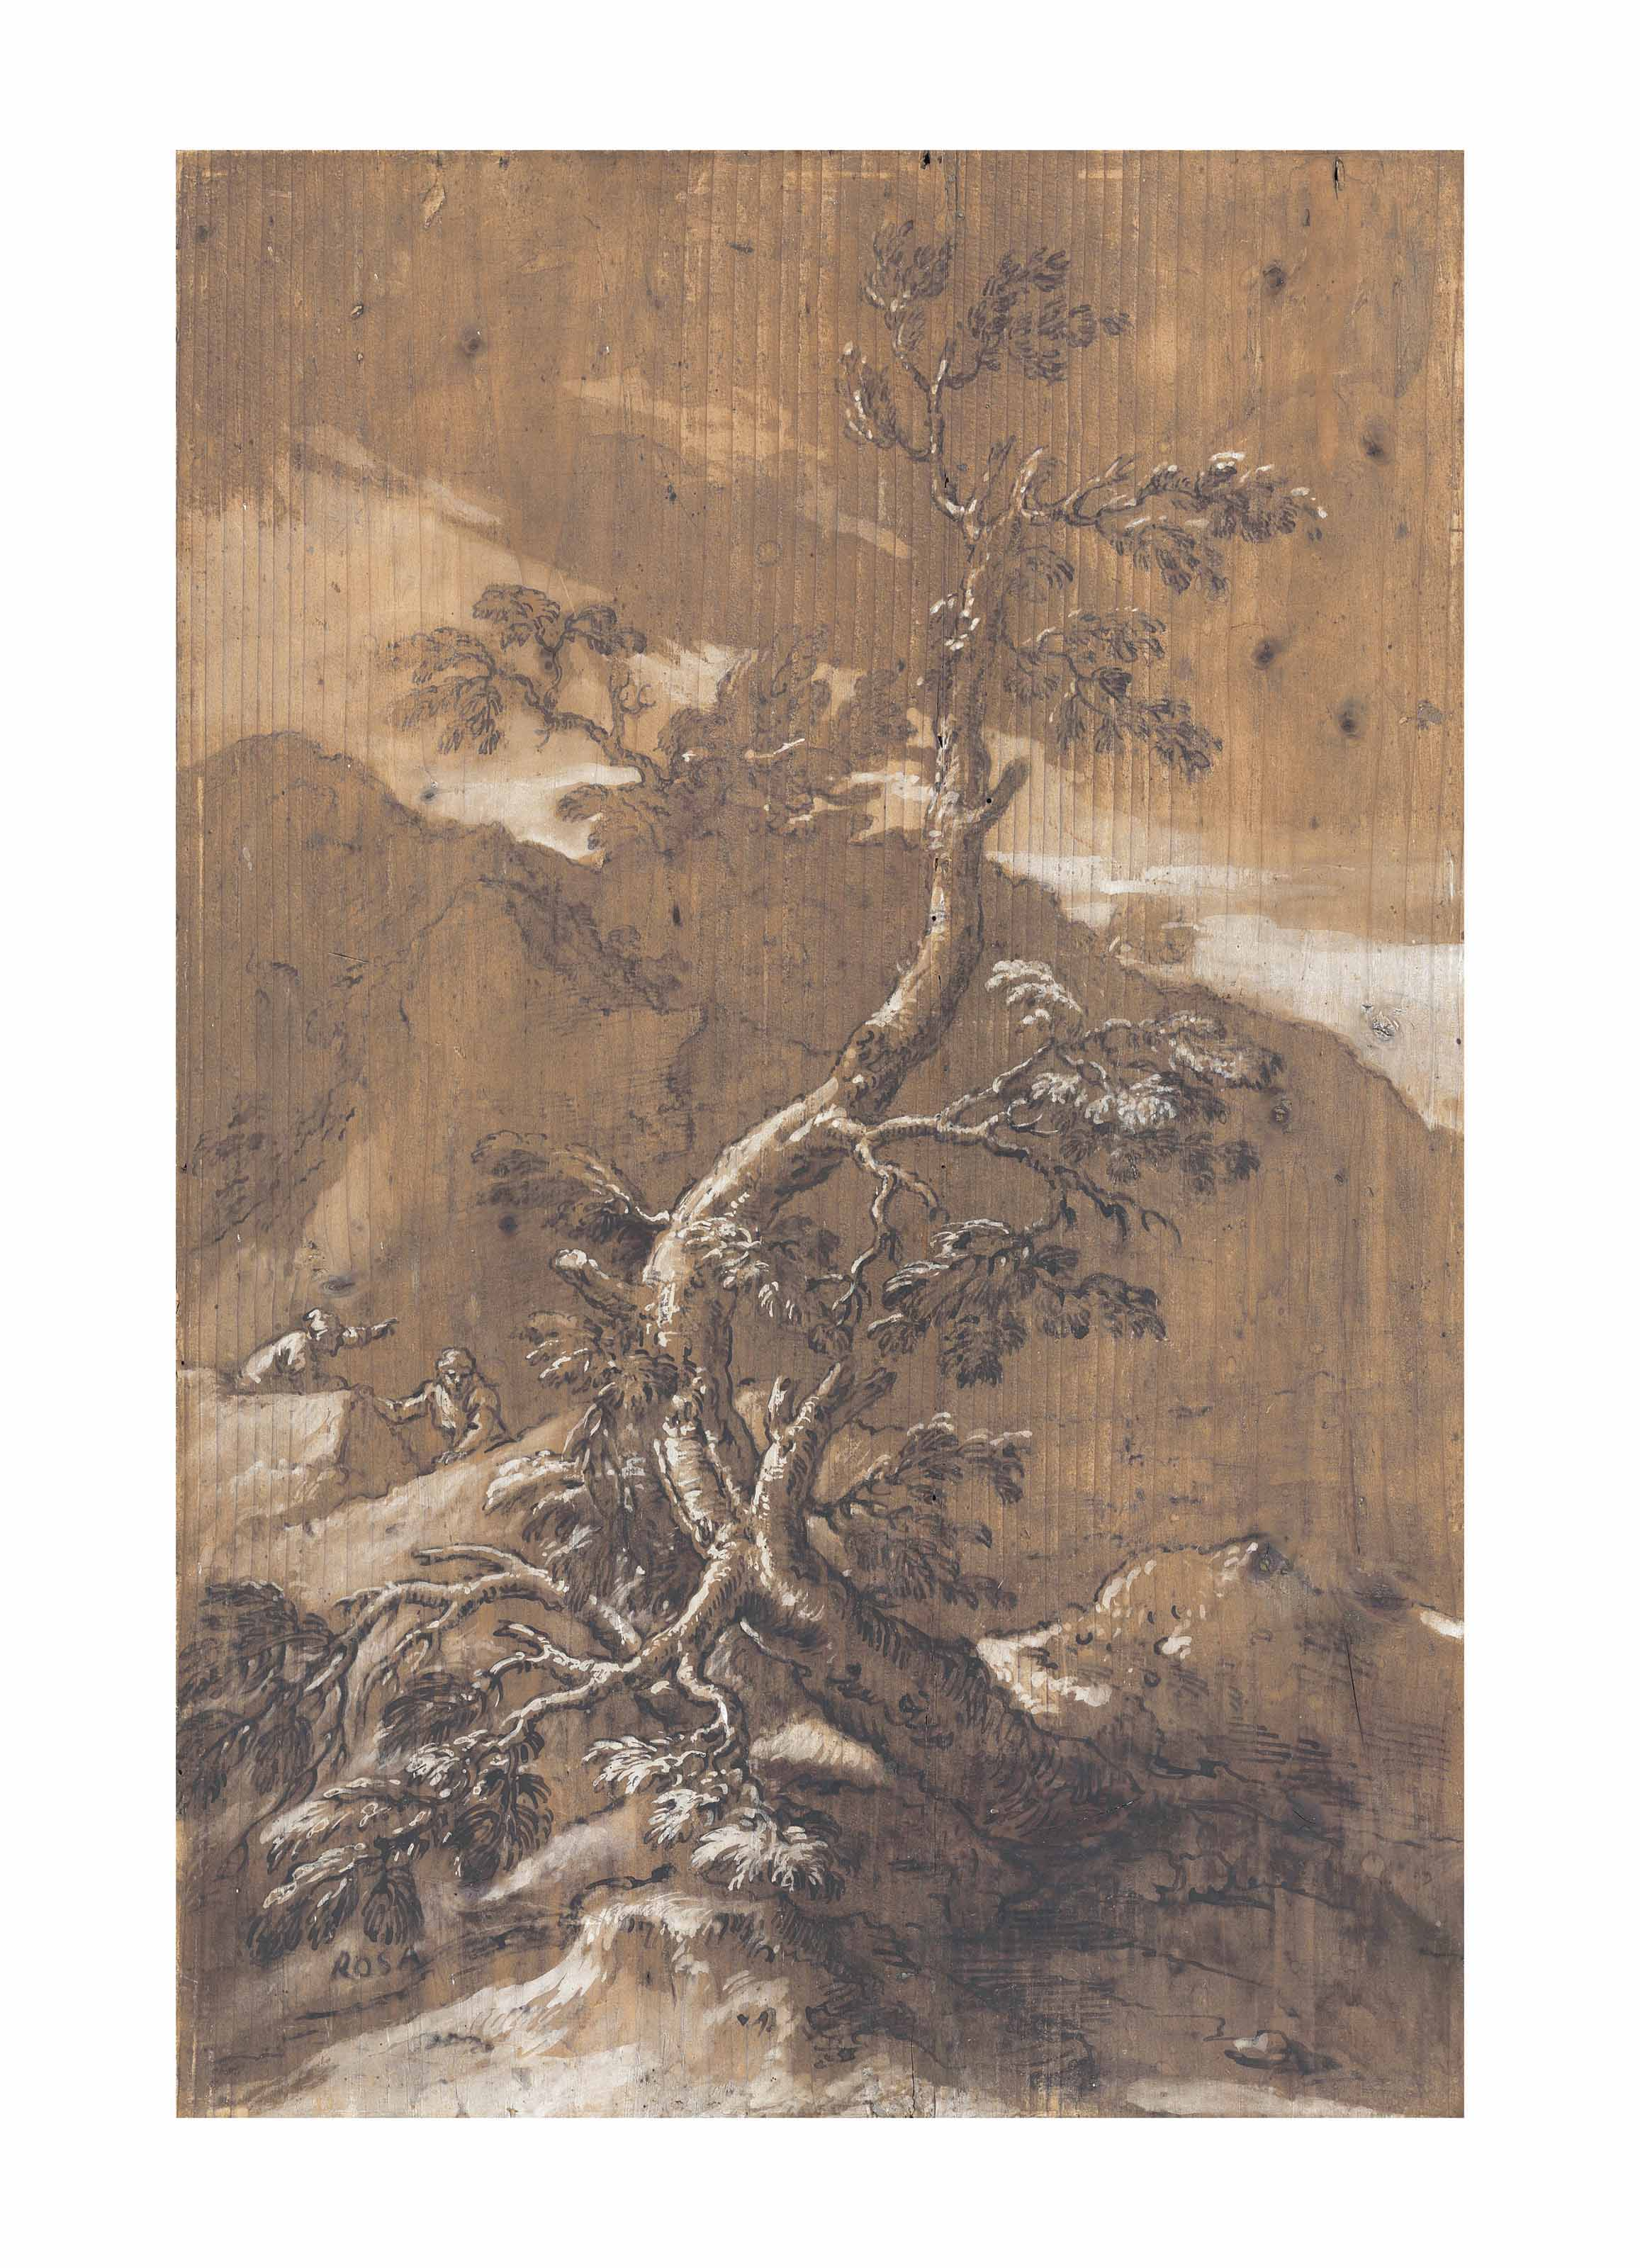 A rocky landscape with a tree and two figures